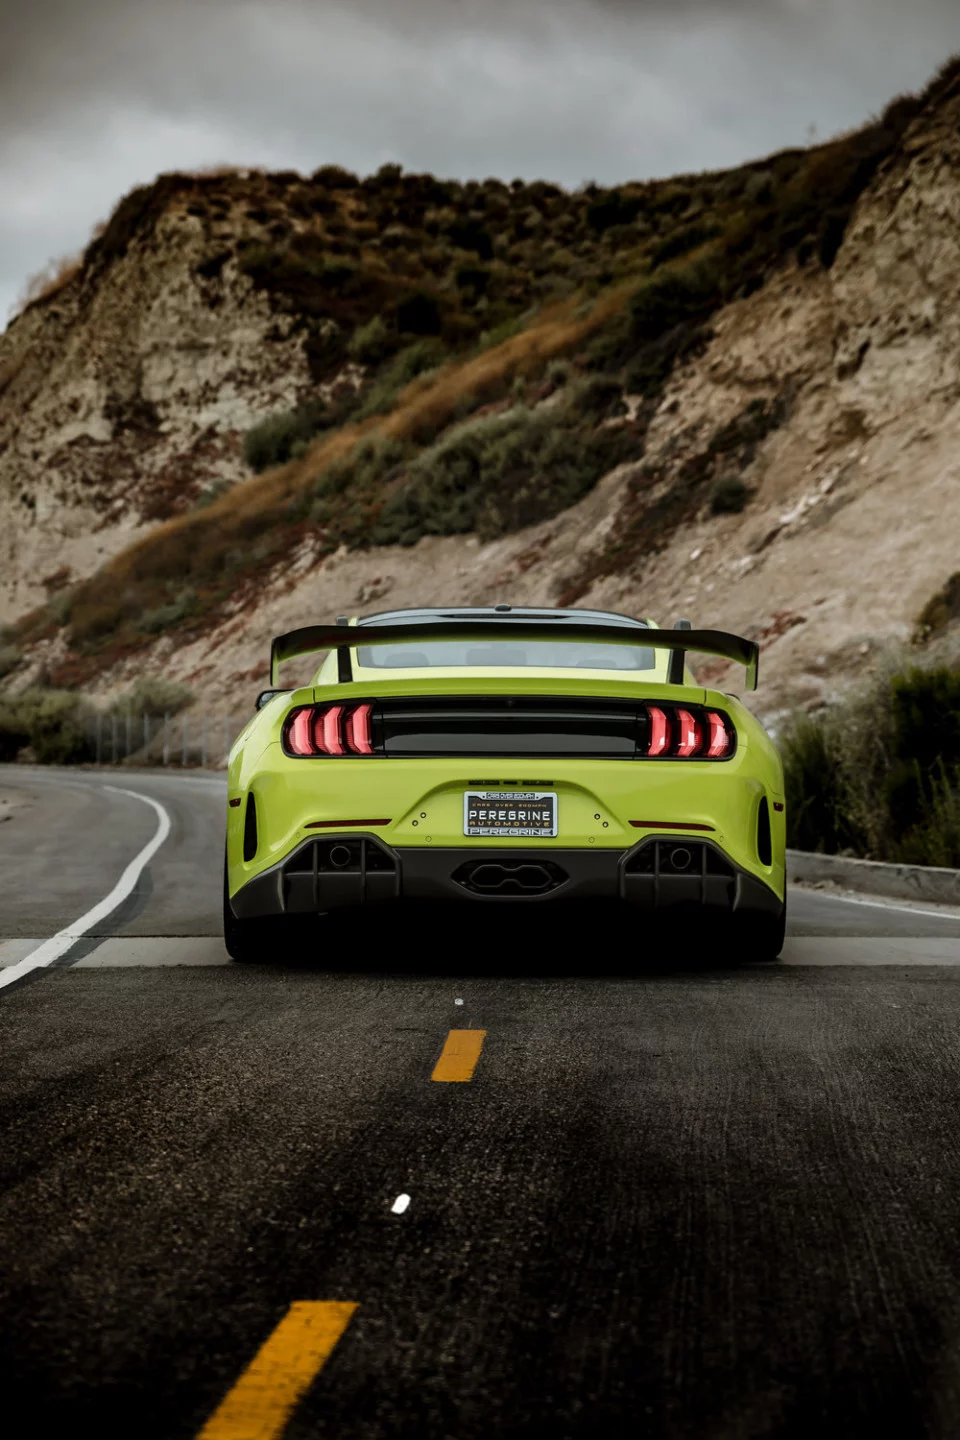 Peregrine Automotive To Debut 900hp Revenge Mustang Gt In Monterey With Images Mustang Mustang Gt Super Cars